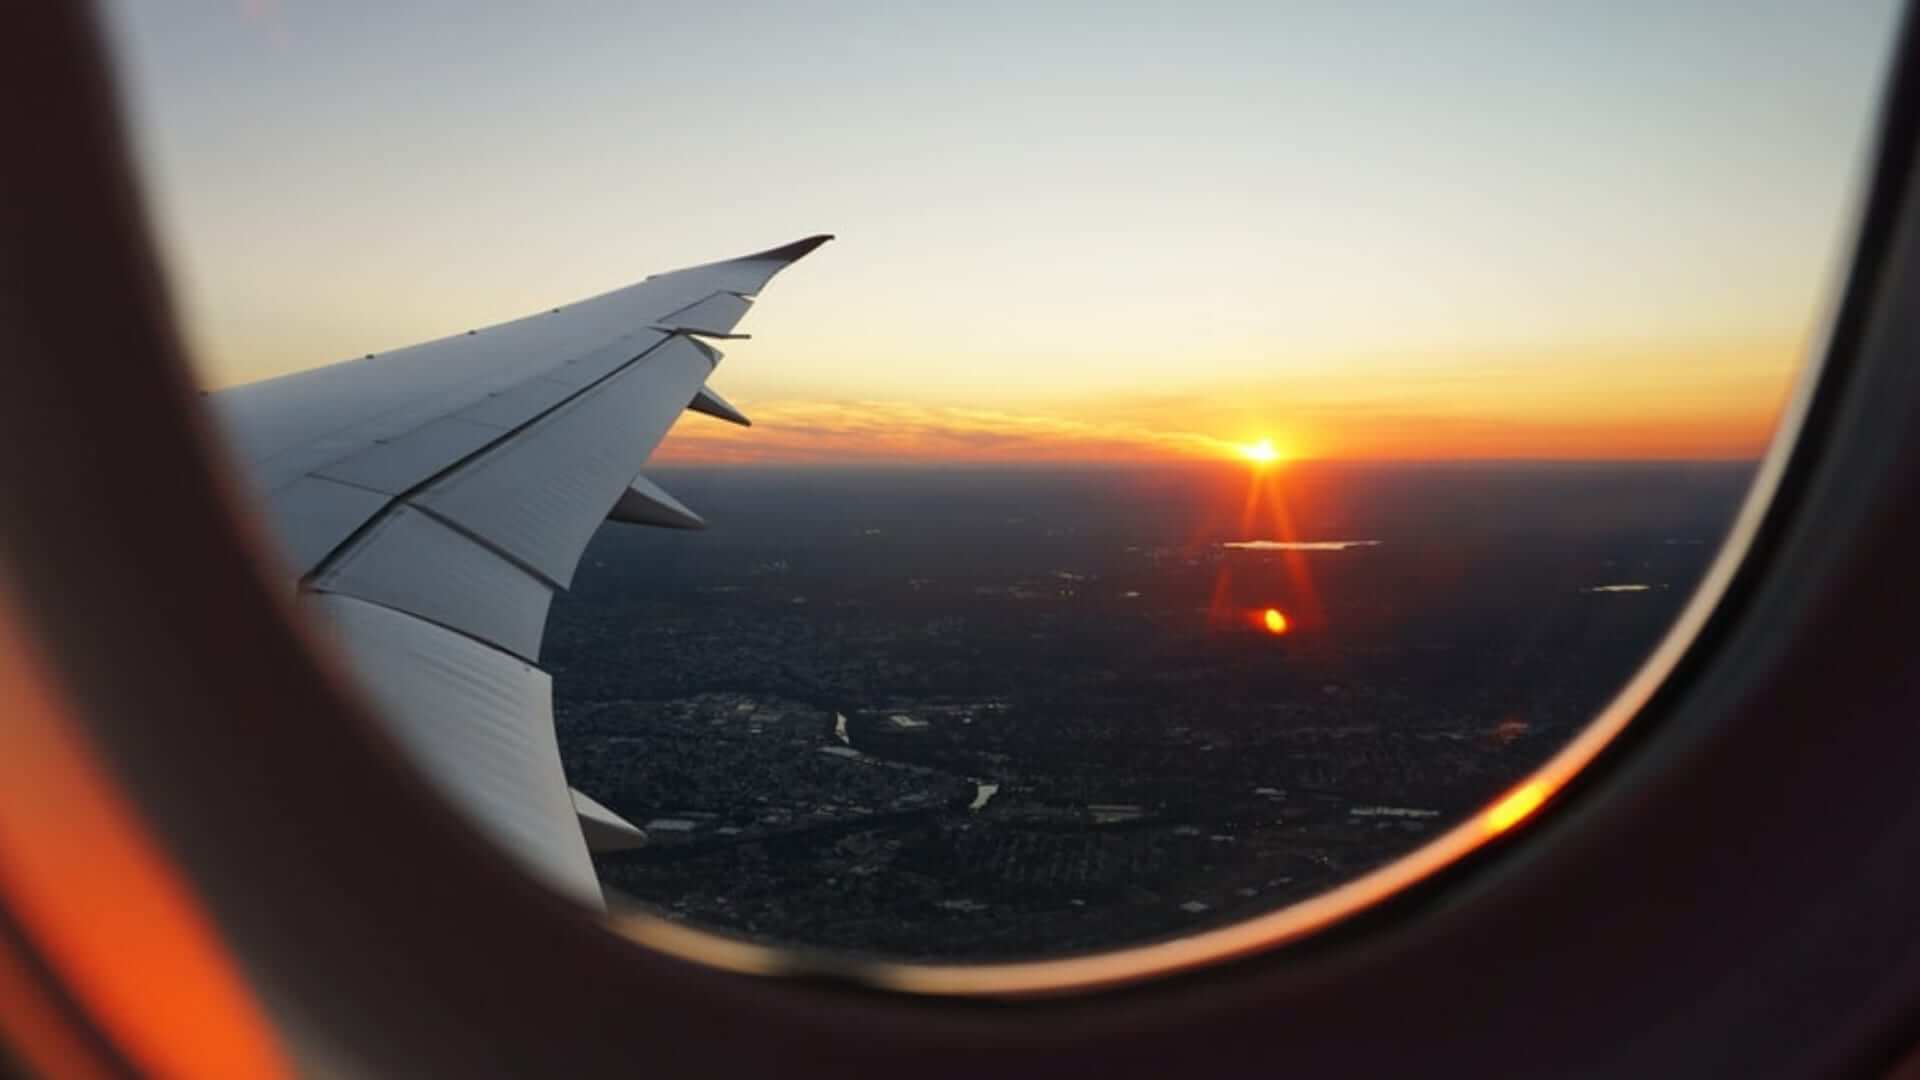 A view from an airplane window during sunset.